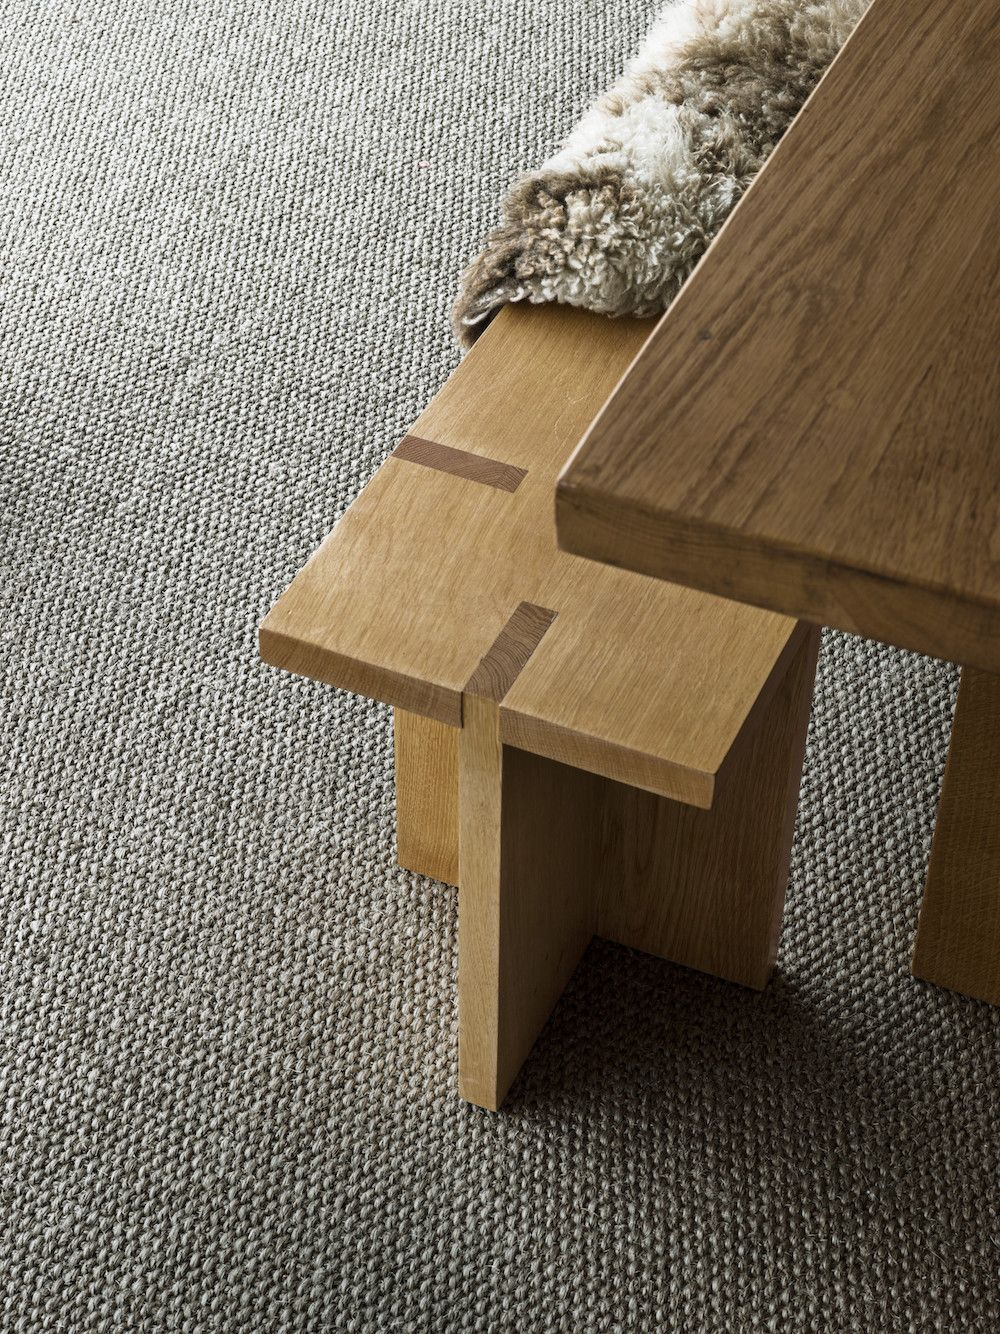 Hard wearing environmentally friendly and stylish Sisal